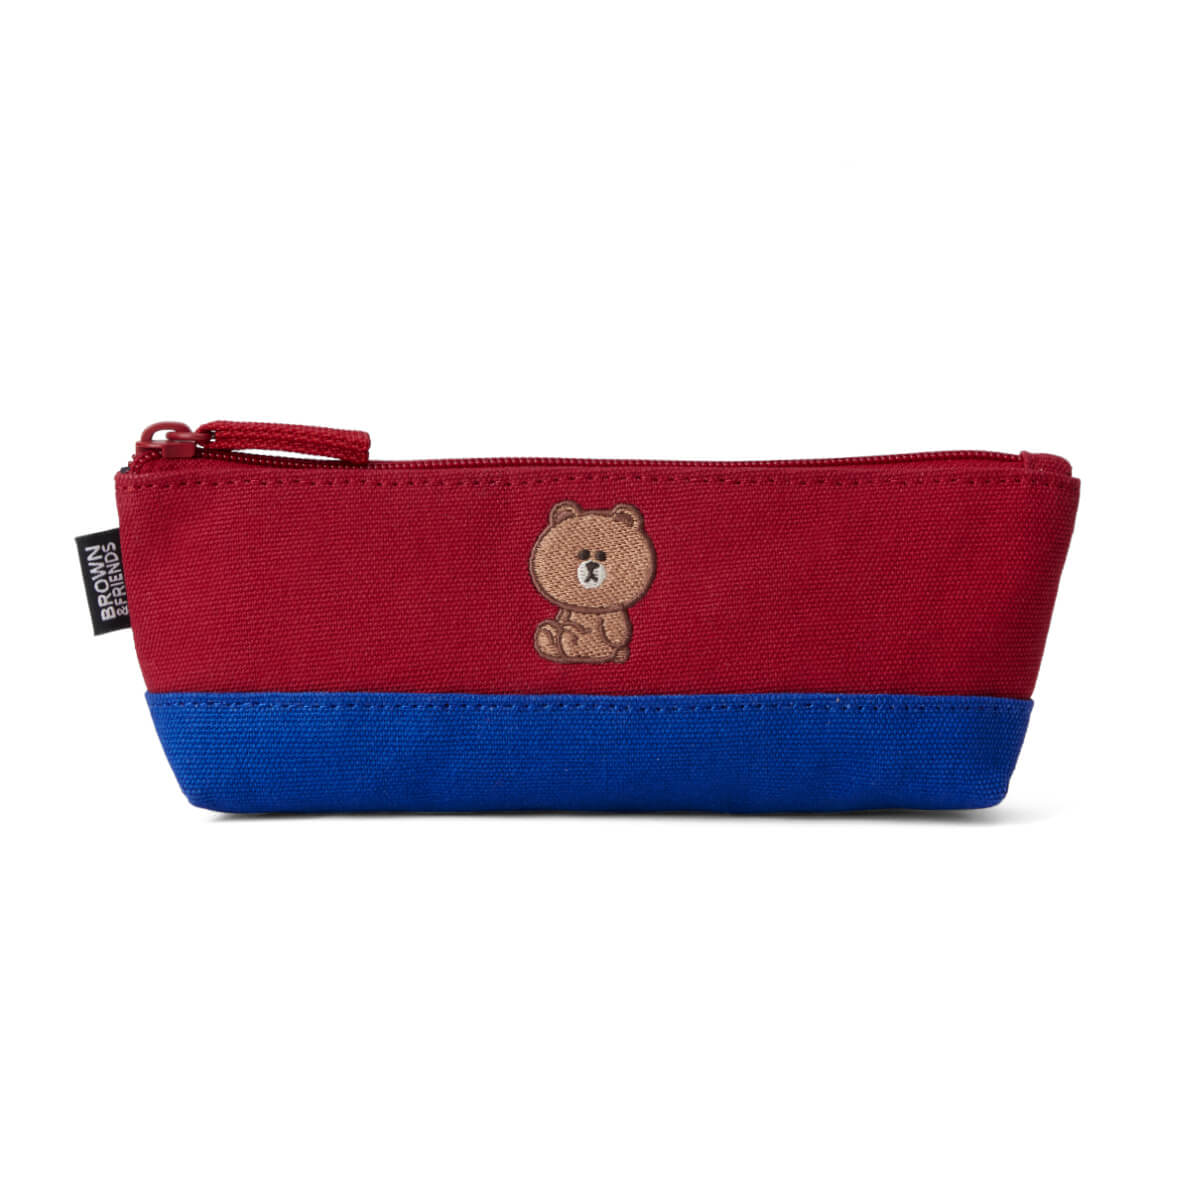 BROWN 20 University Pencil Case Red